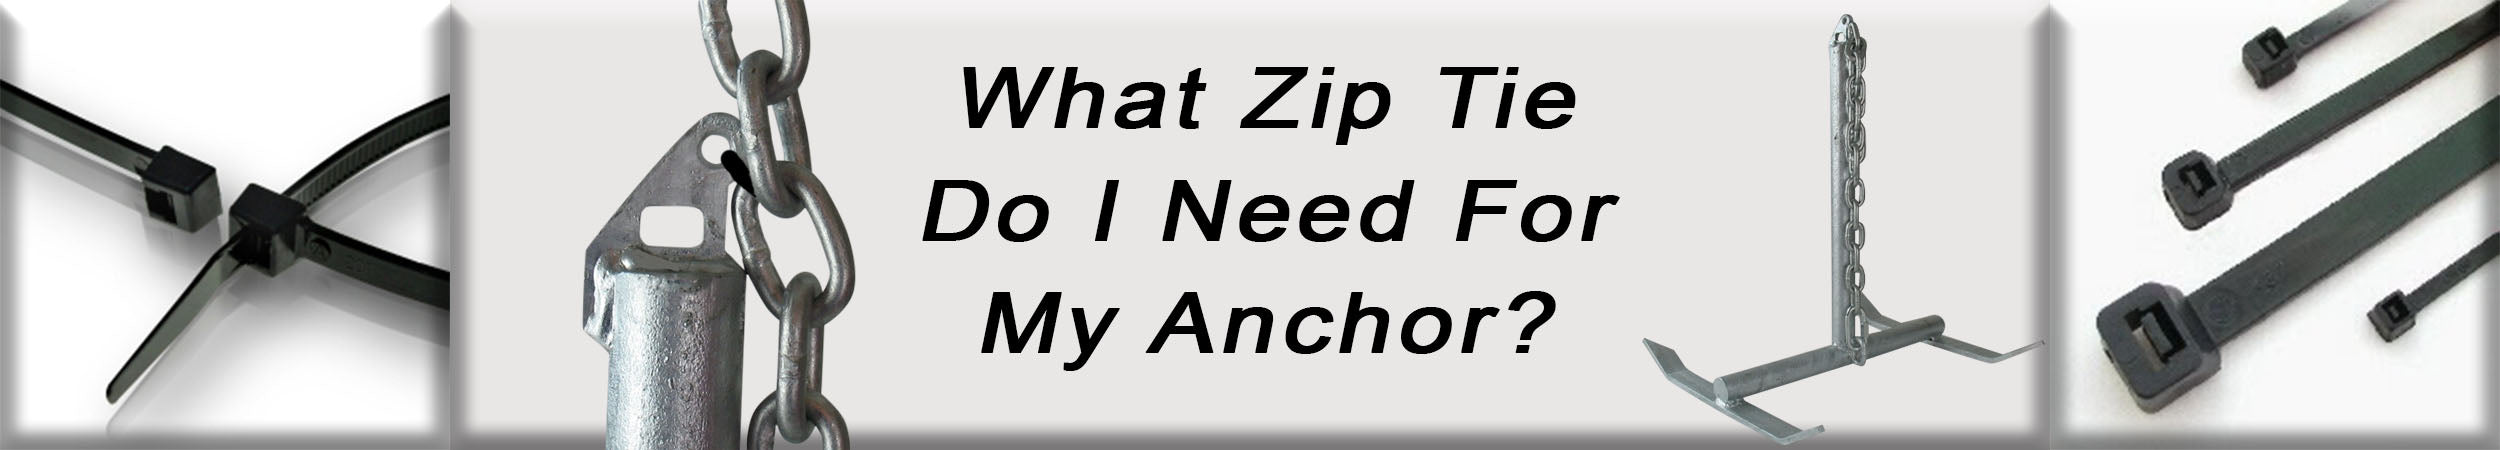 Zip Tie for River Anchoring